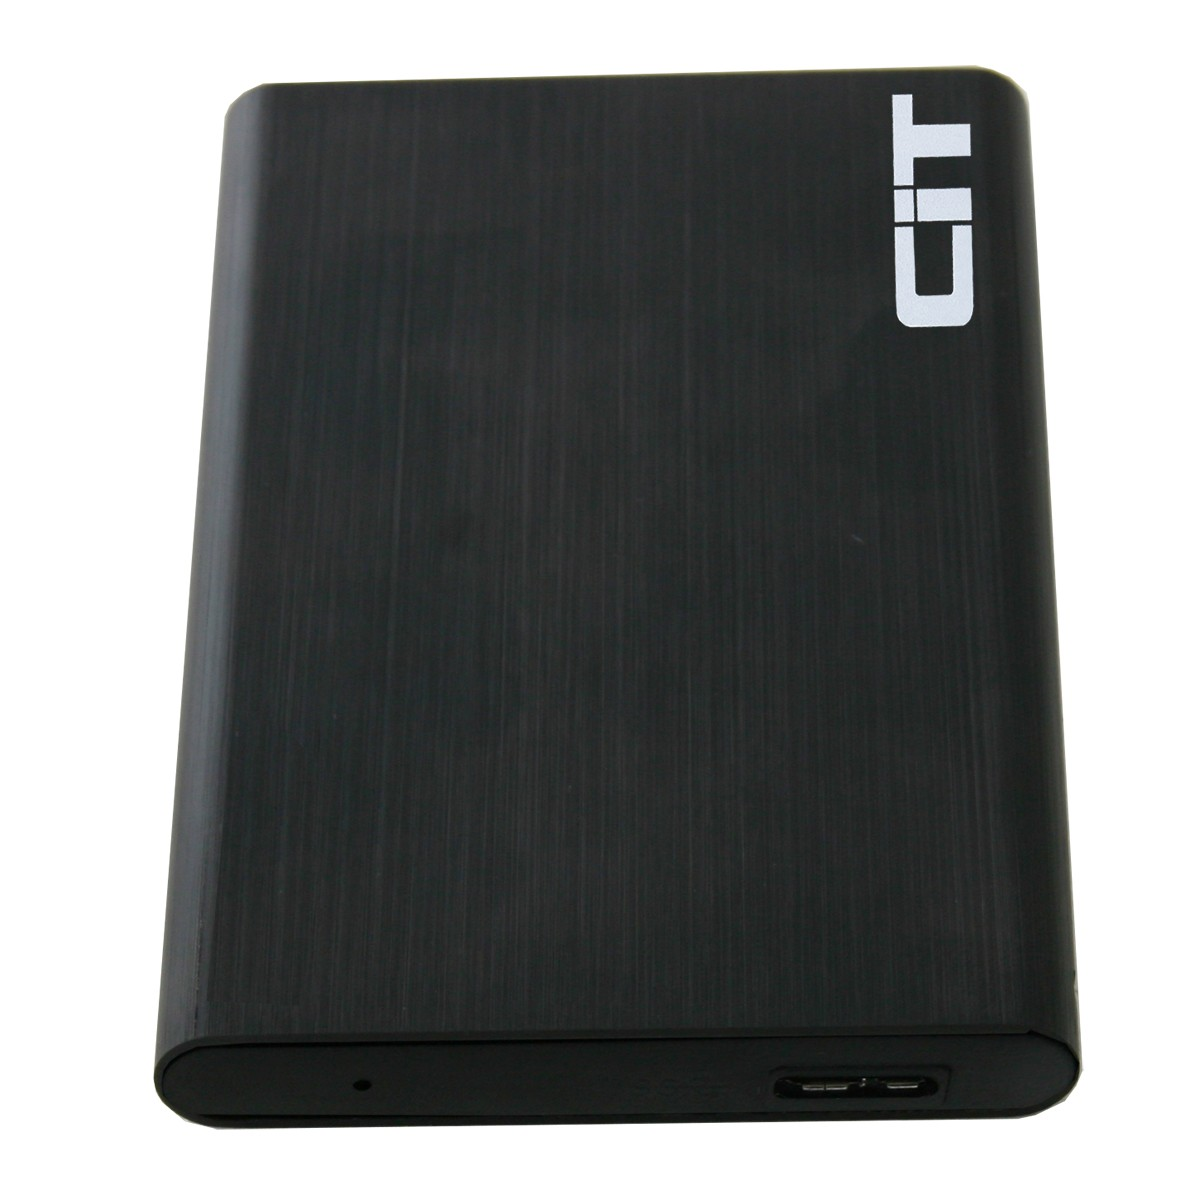 320GB High Speed USB 3.0 External HDD Portable Mobile Hard Drive Disc